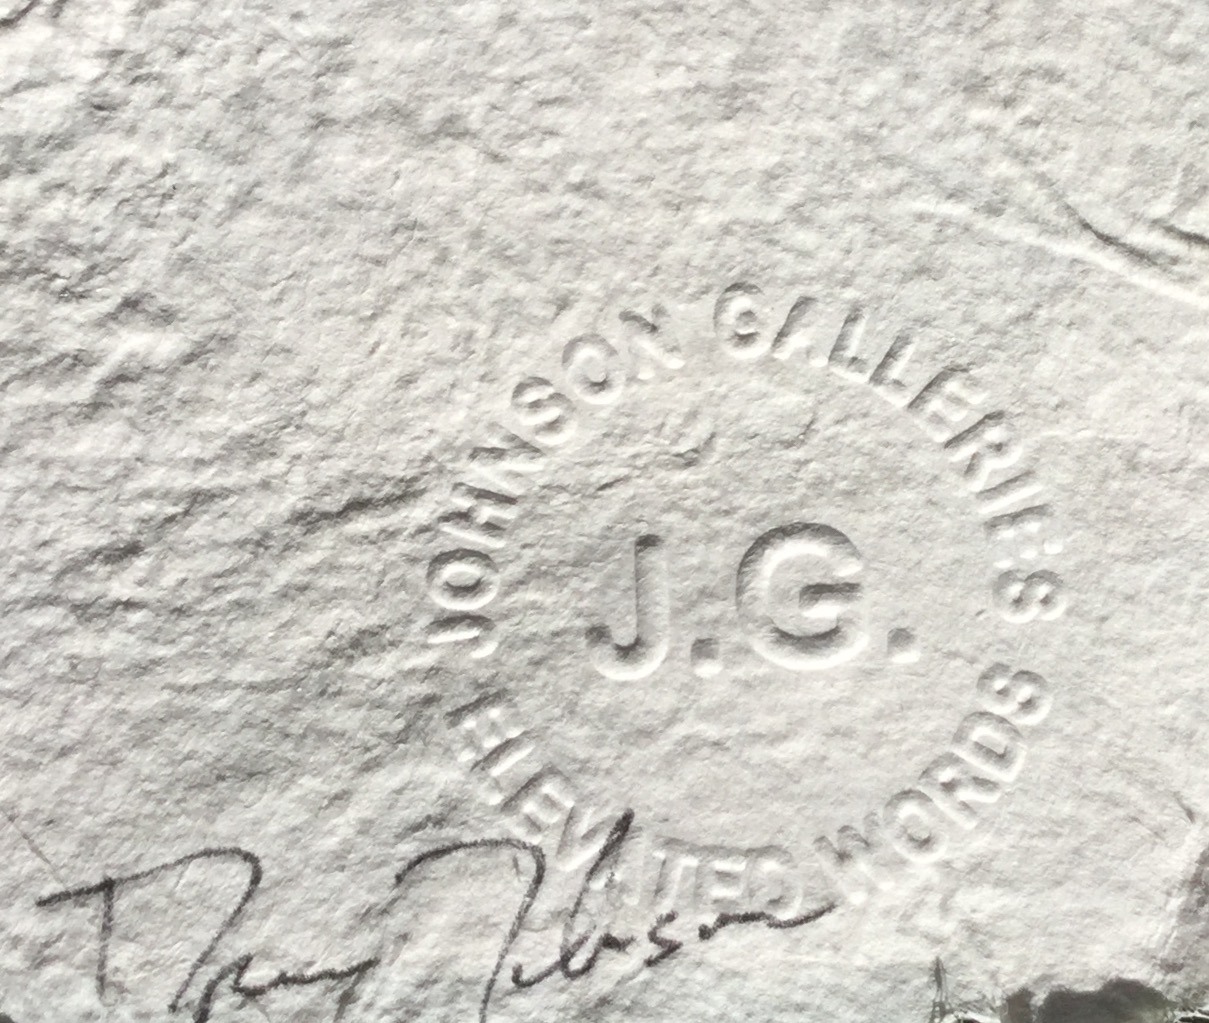 Johnson Seal and Signature